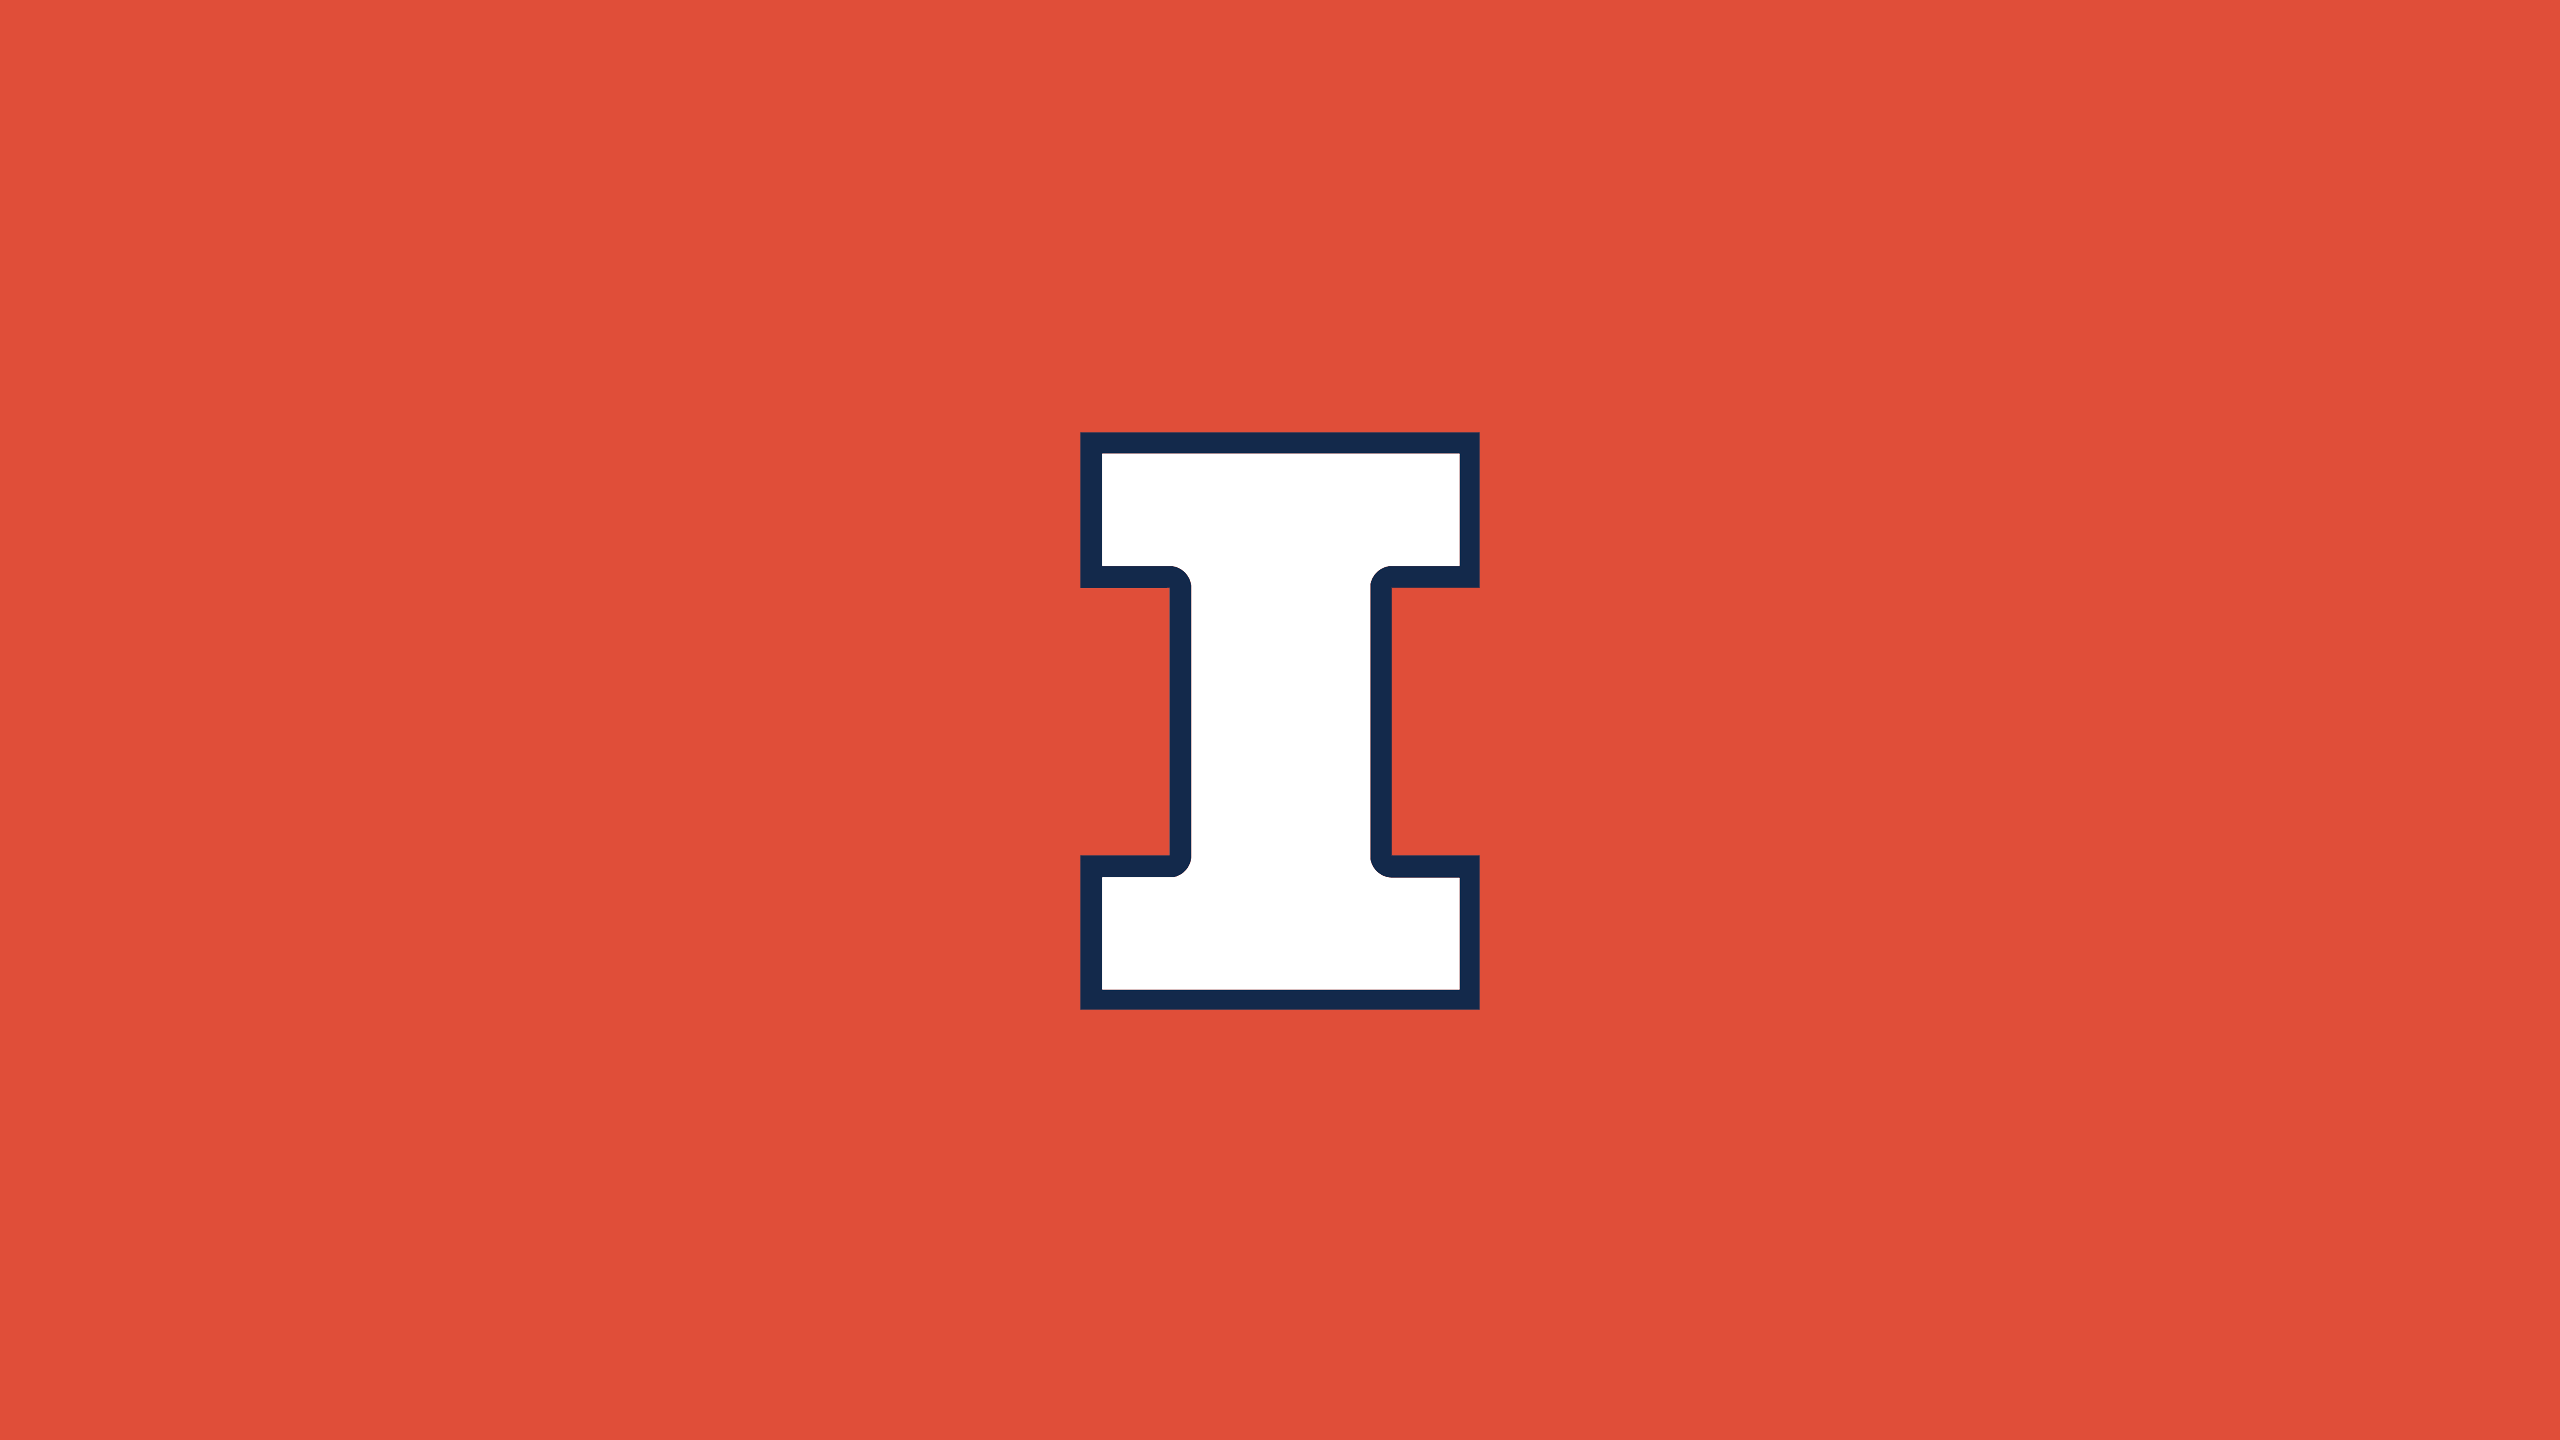 University of Illinois Fighting Illini